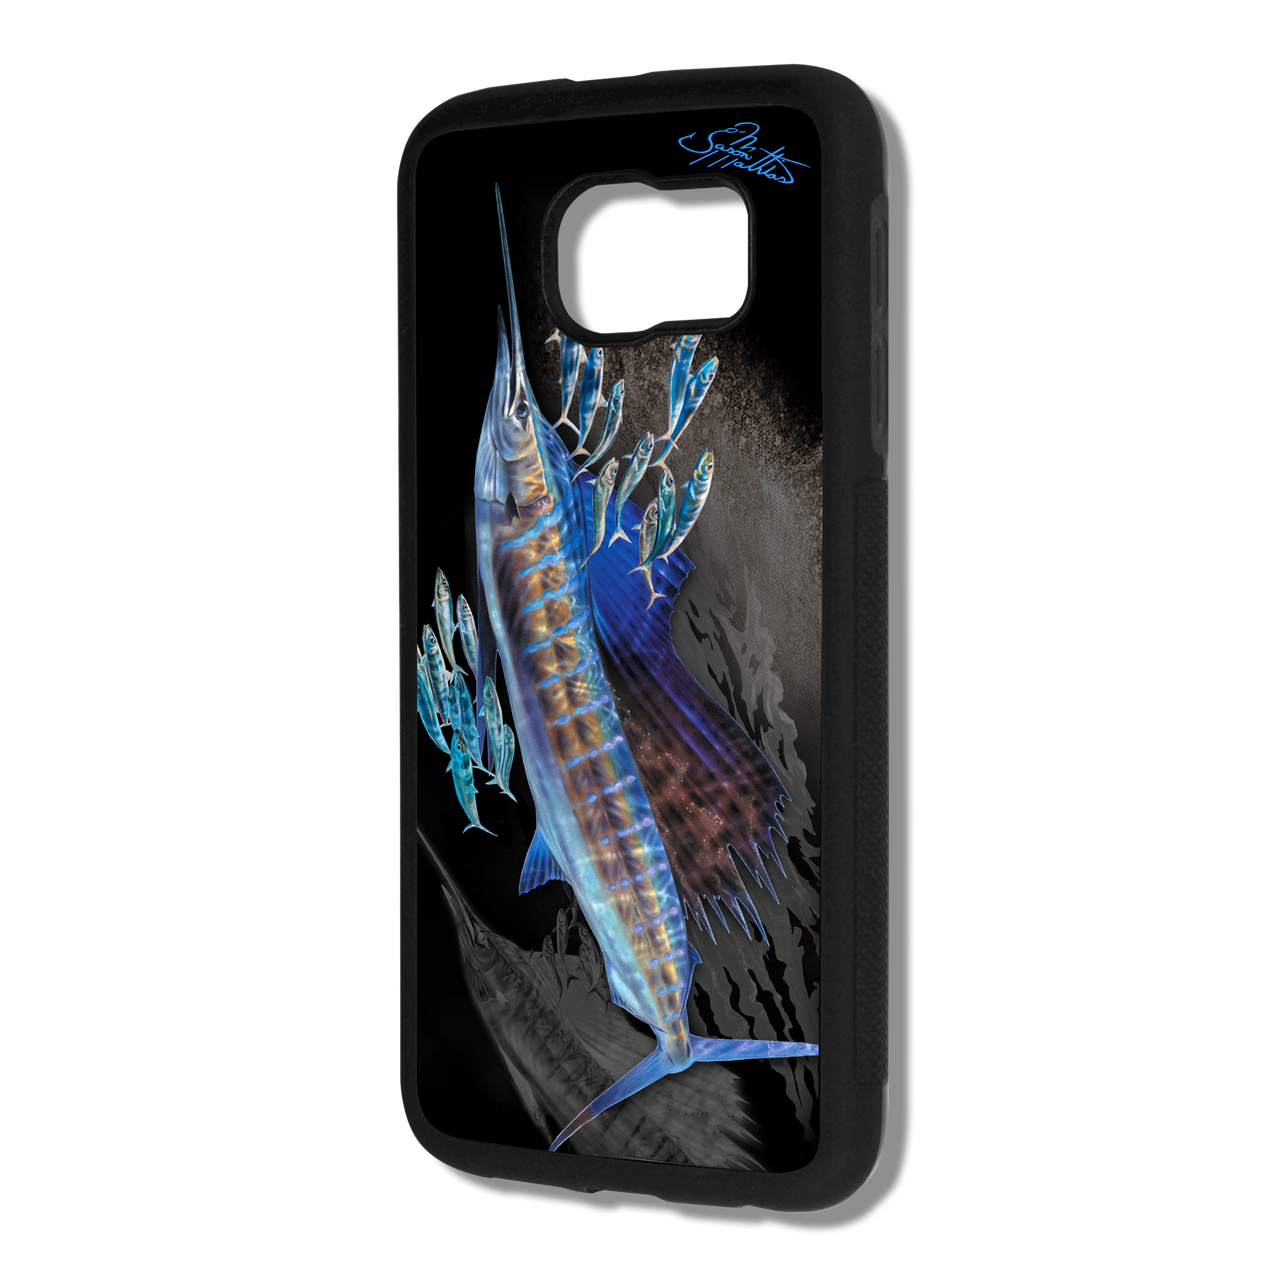 samsung-galaxy-case-cover-sailfish-jason-mathias-art.png